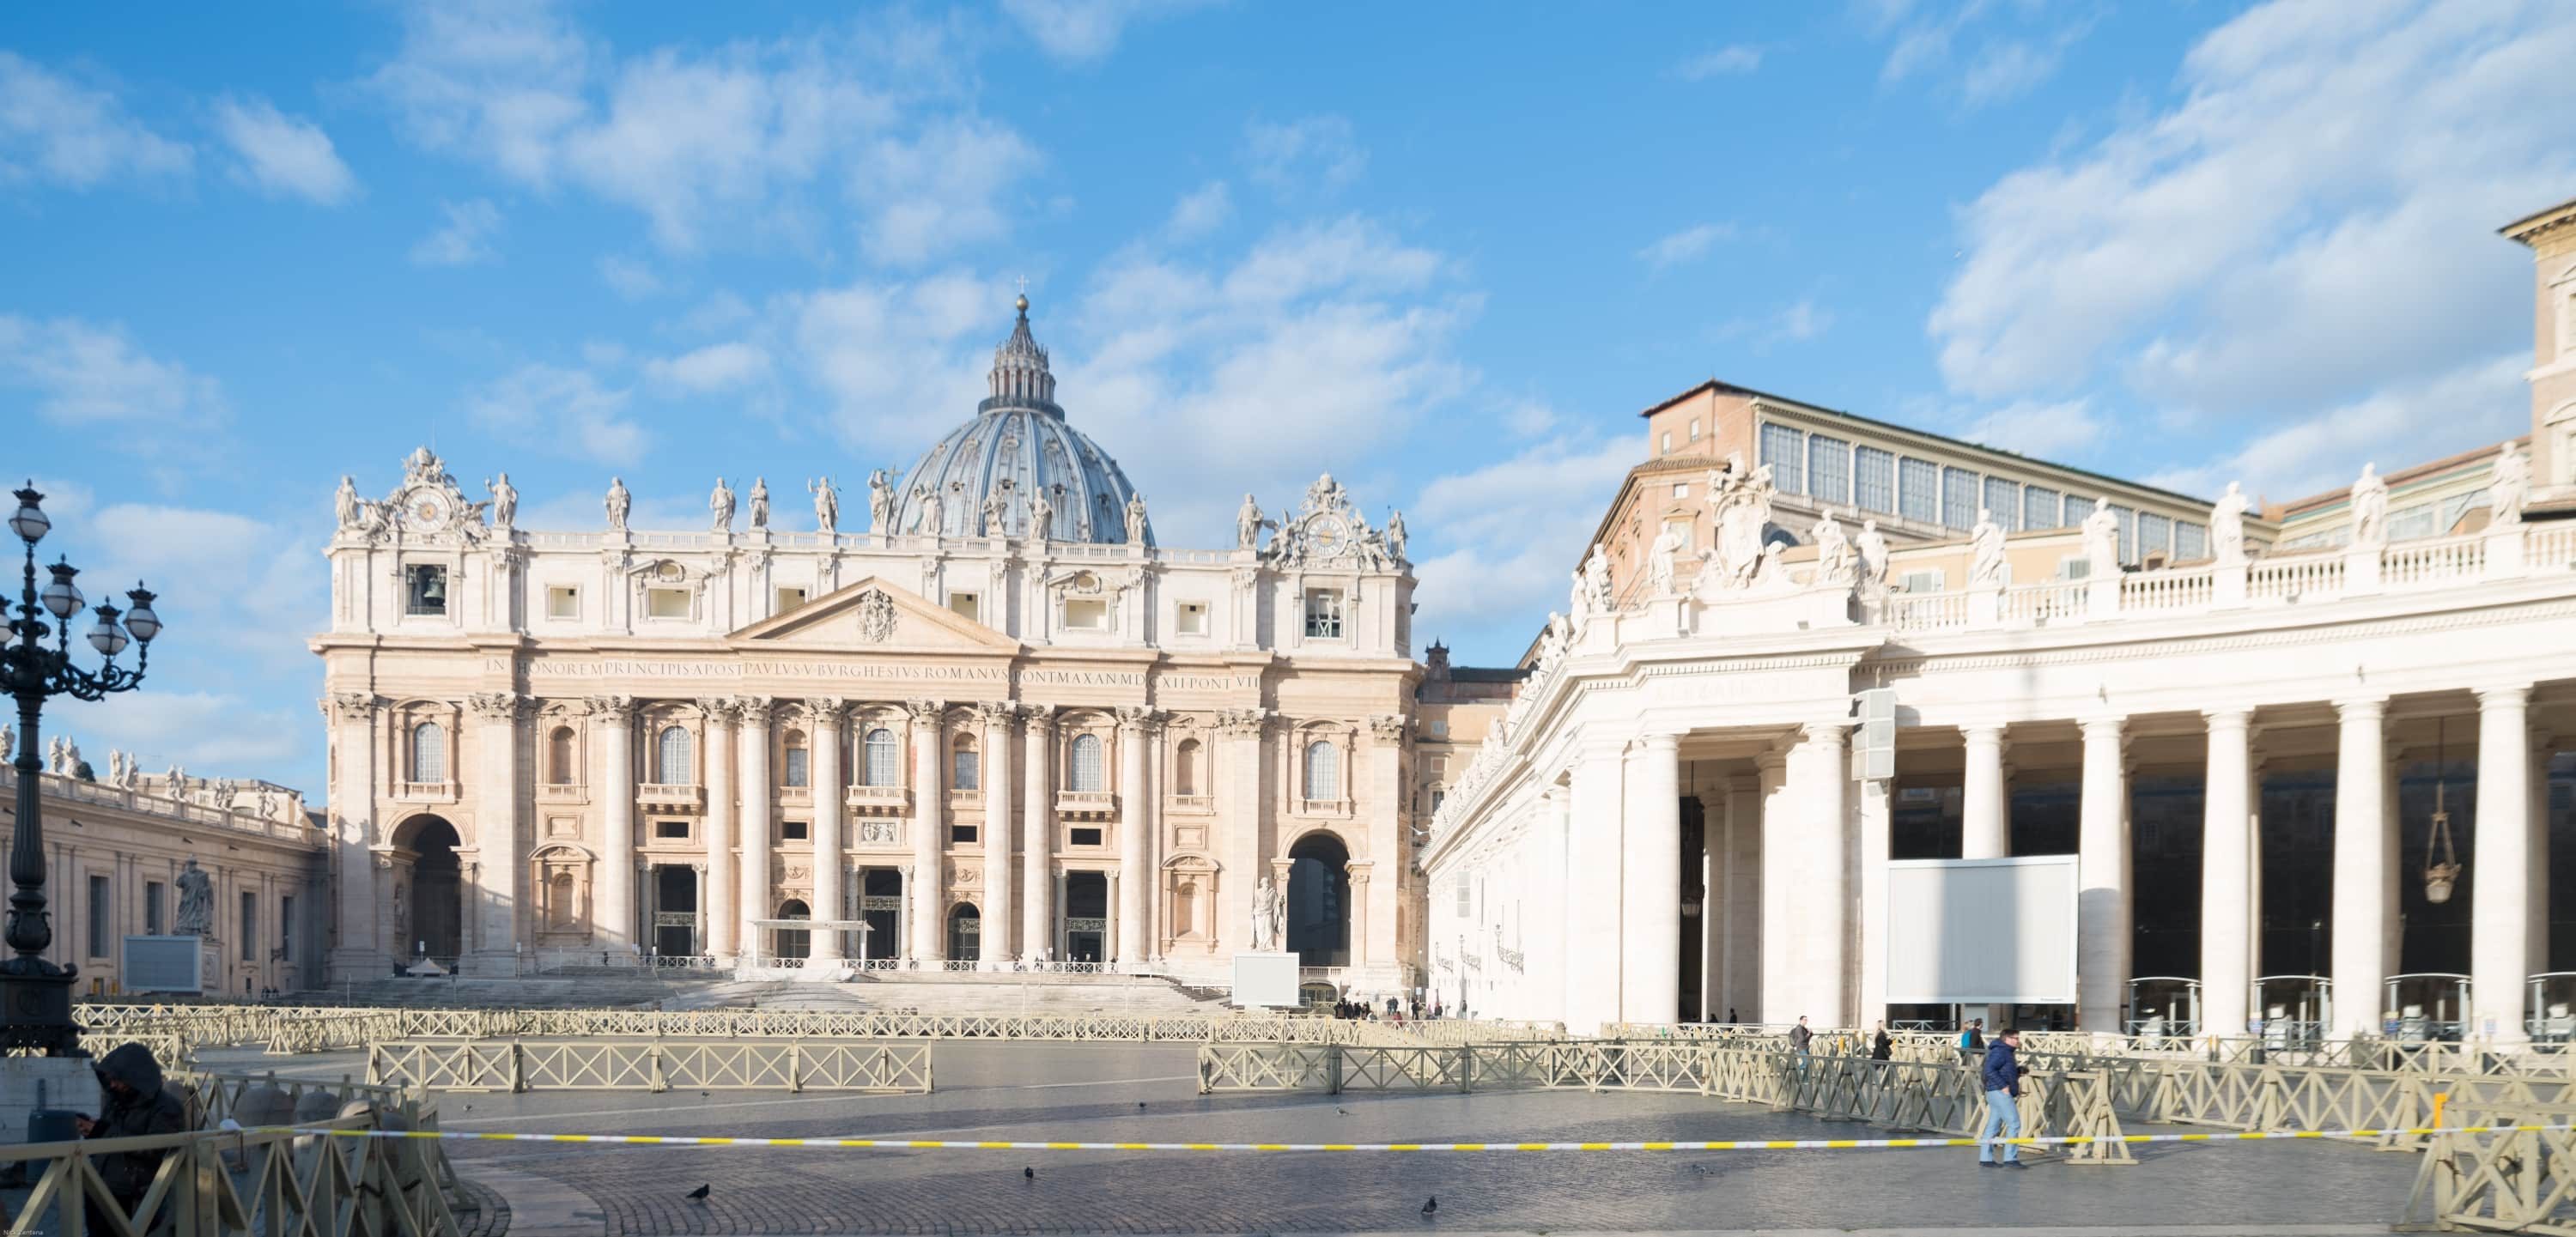 St. Peter's square and basilica